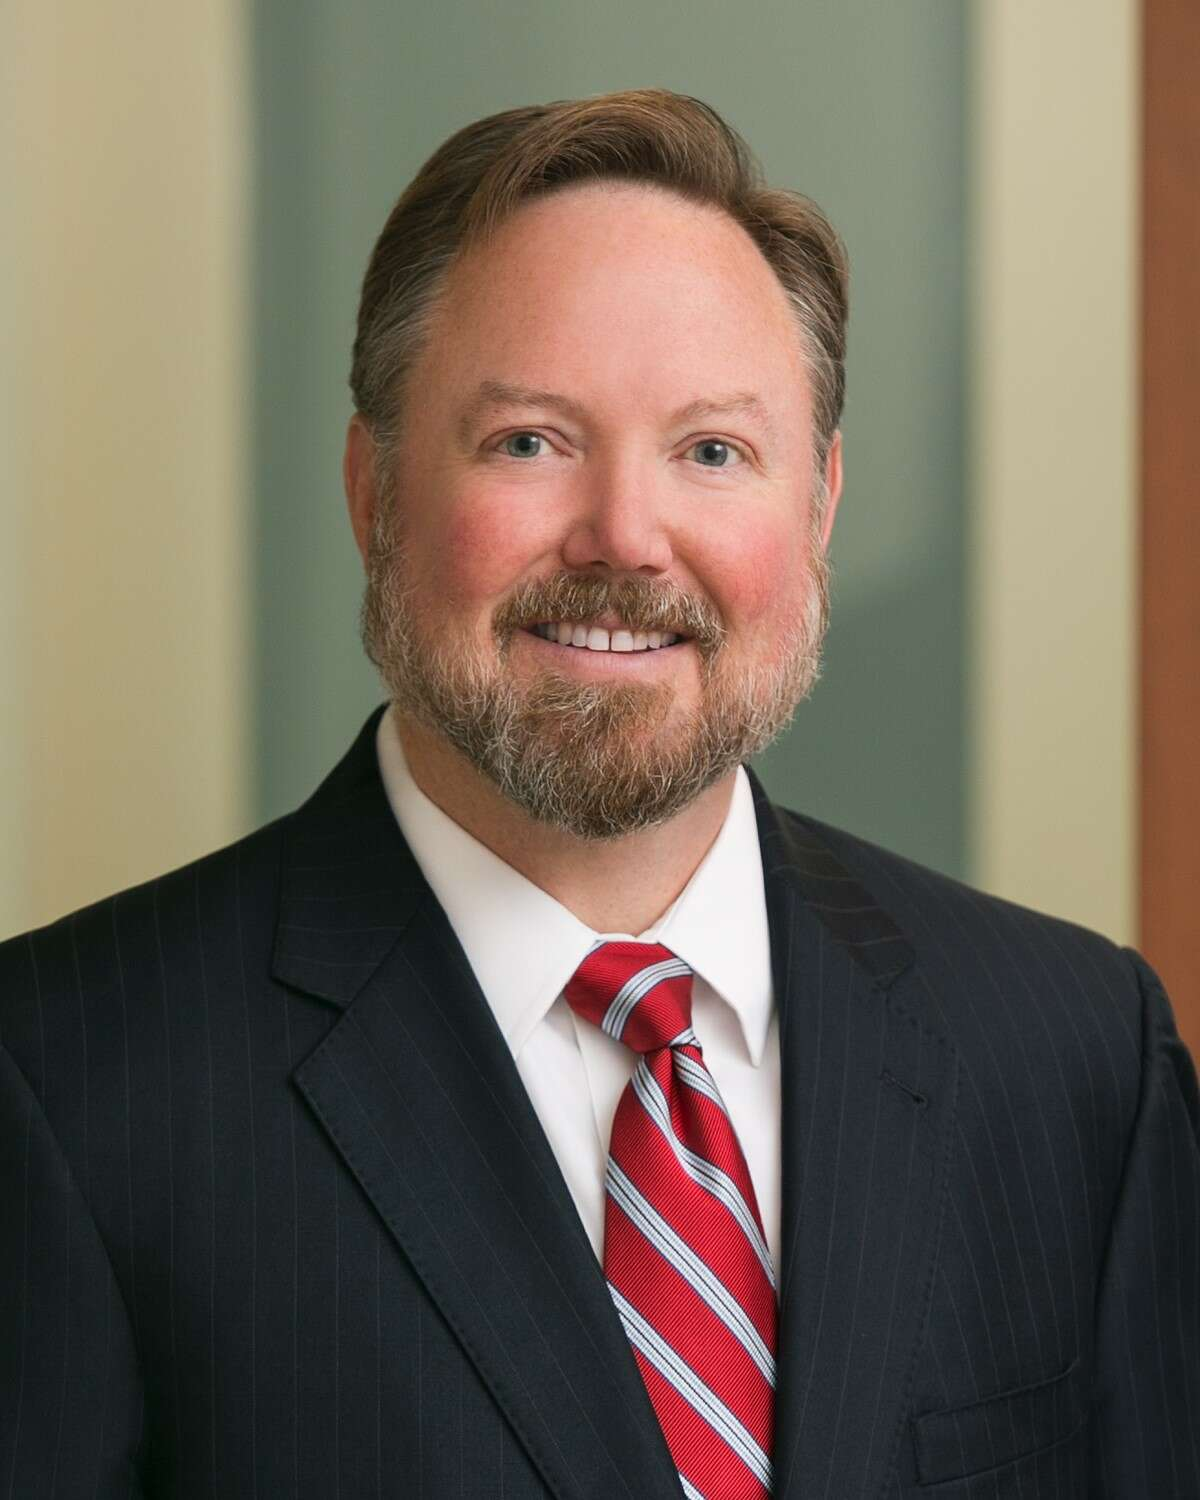 Gregory Etzel has joined the Houston healthcare team at Morgan Lewis as partner.